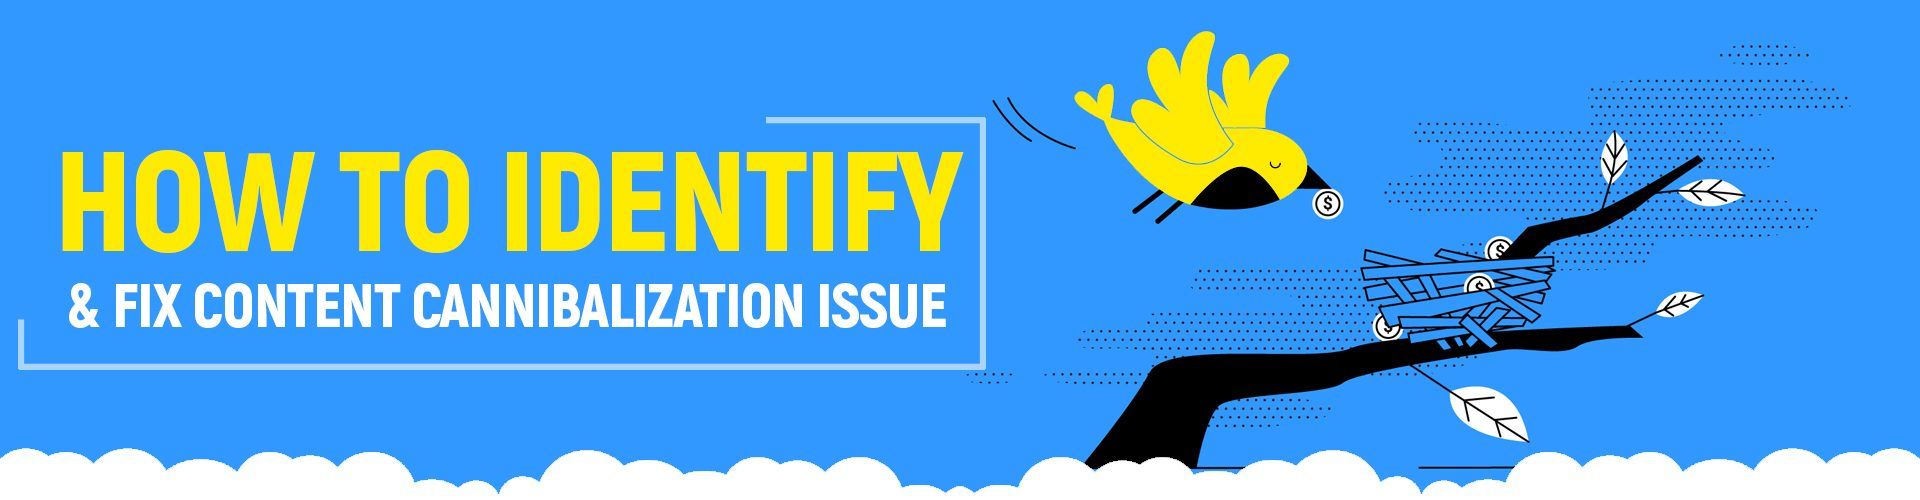 How To Identify & Fix Content Cannibalization Issue